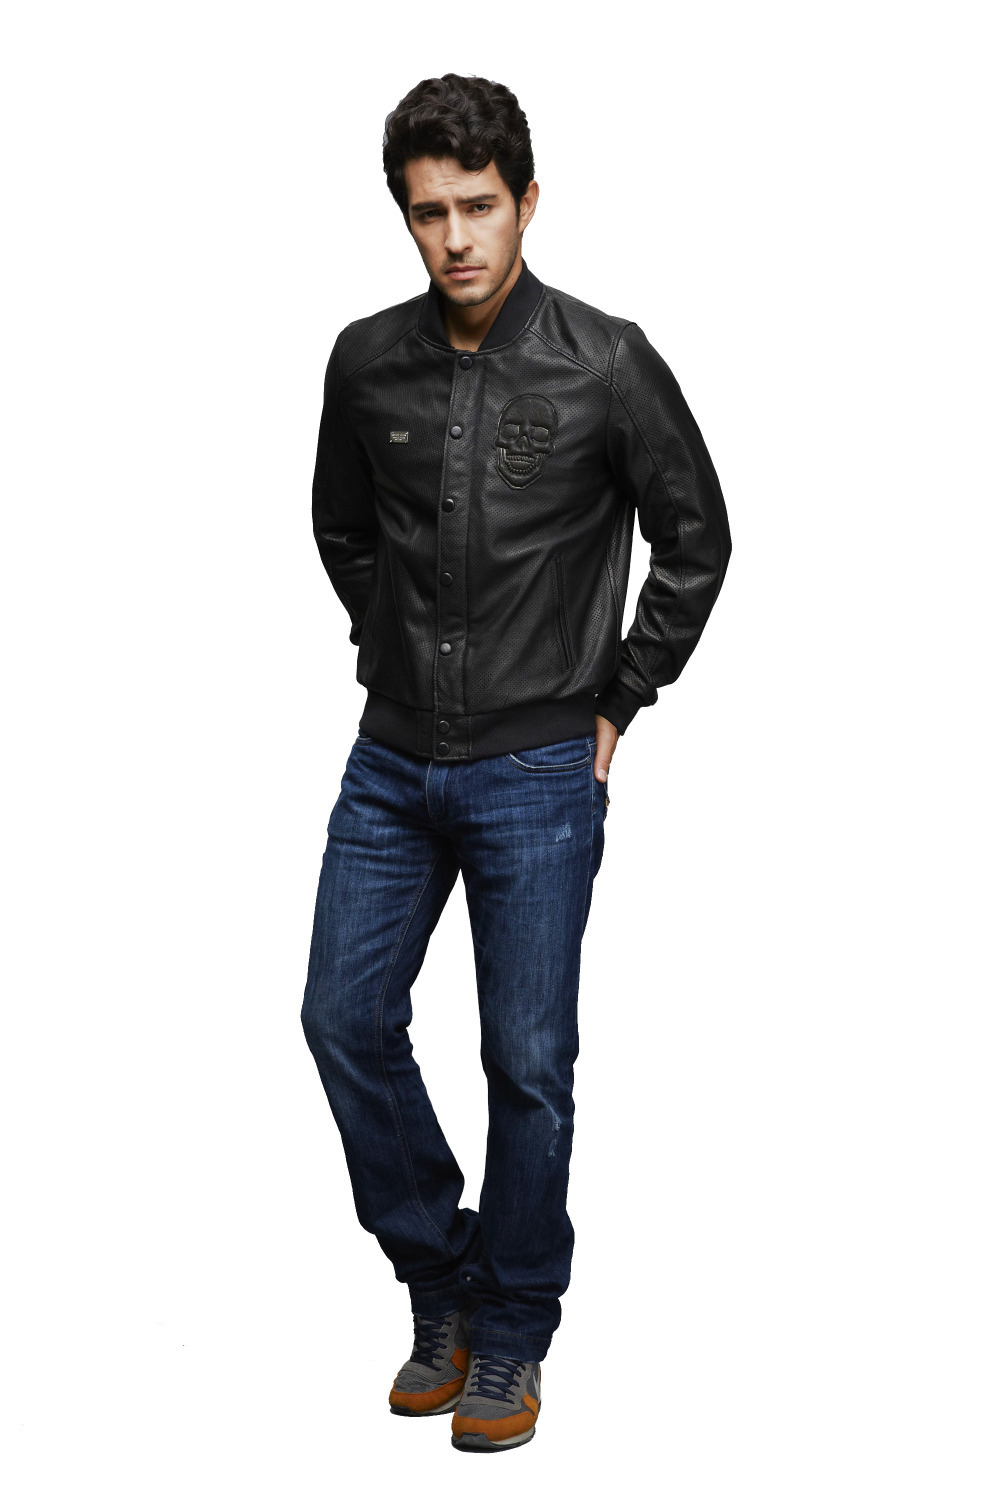 Bomber Jackets: s2w6s5q3to.gq - Your Online Jackets Store! Get 5% in rewards with Club O! Discount. 10% Off or More; 25% Off or More; 50% Off or More; Product Features. Water Repellent; Customer Ratings. 4 & up; Boston Harbour Vintage Men's Bomber Leather Jacket.